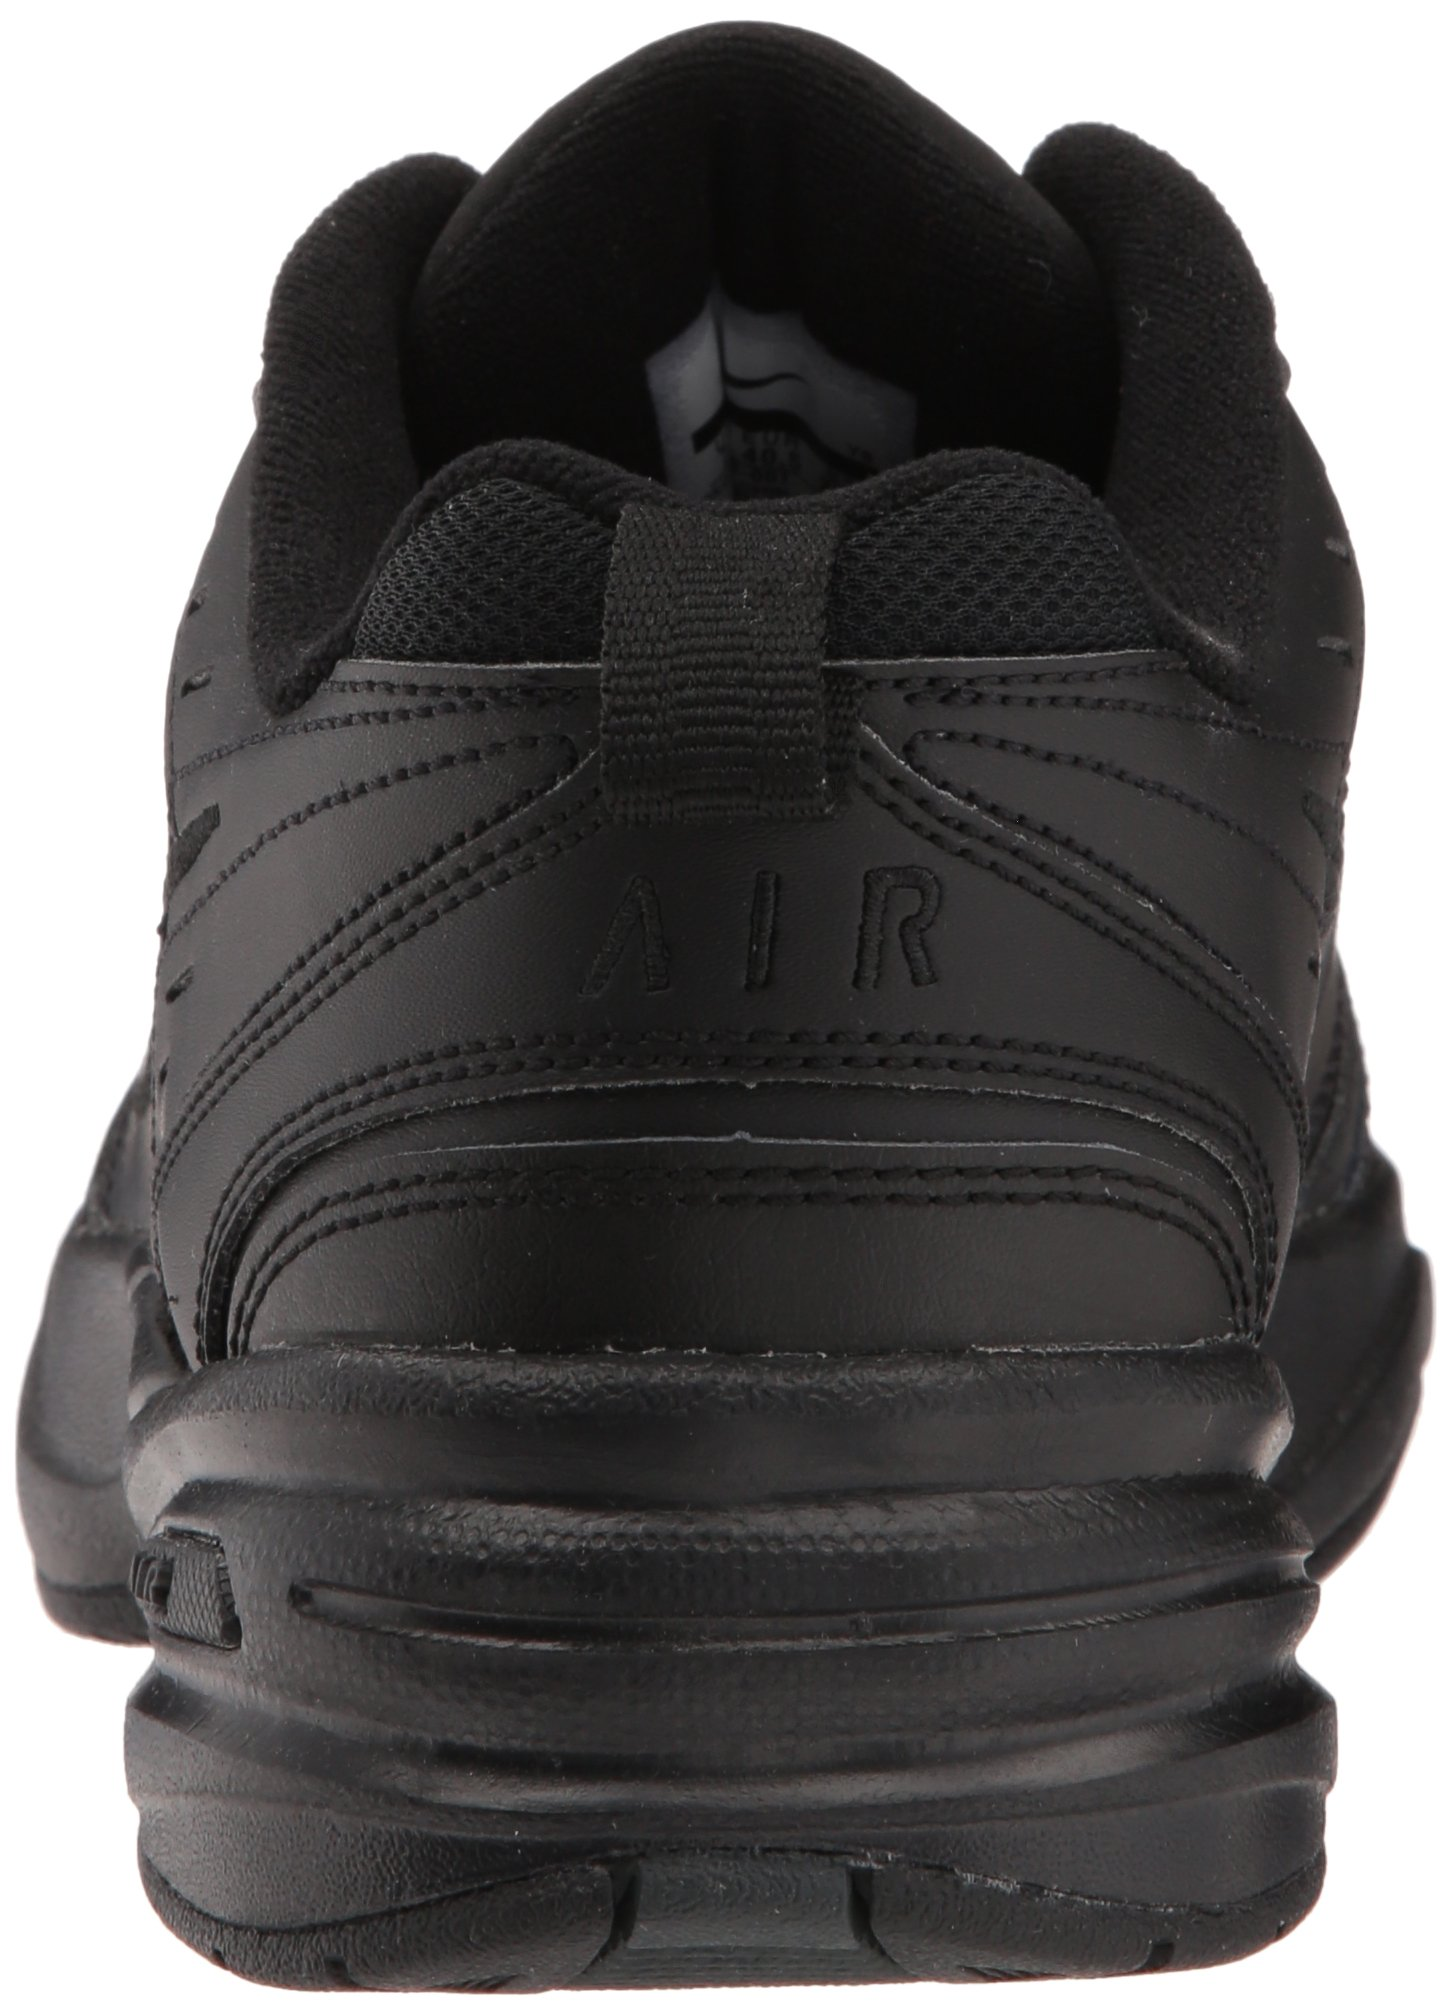 NIKE AIR MONARCH IV (MENS) - 6 Black/Black by Nike (Image #2)